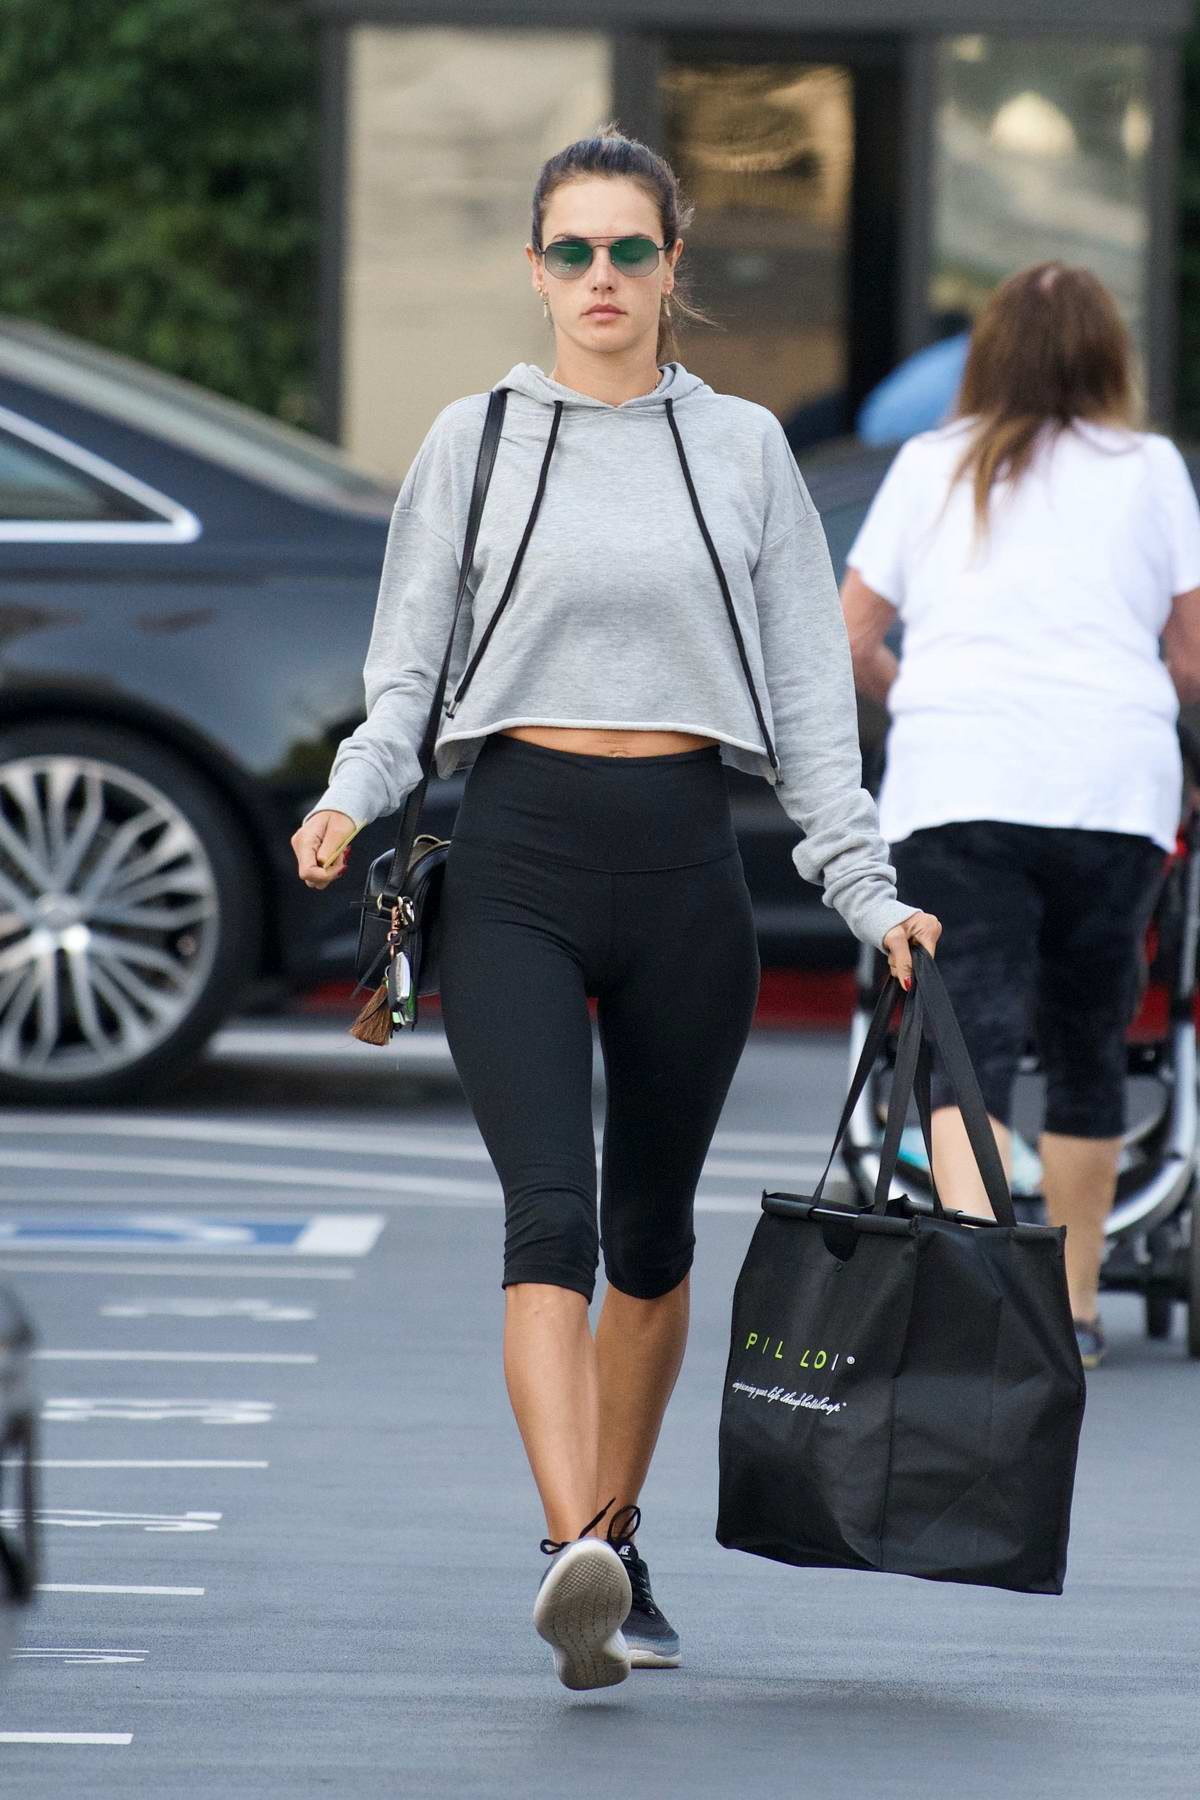 Alessandra Ambrosio steps out in cropped grey hoodie and capri leggings to run errands in Los Angeles